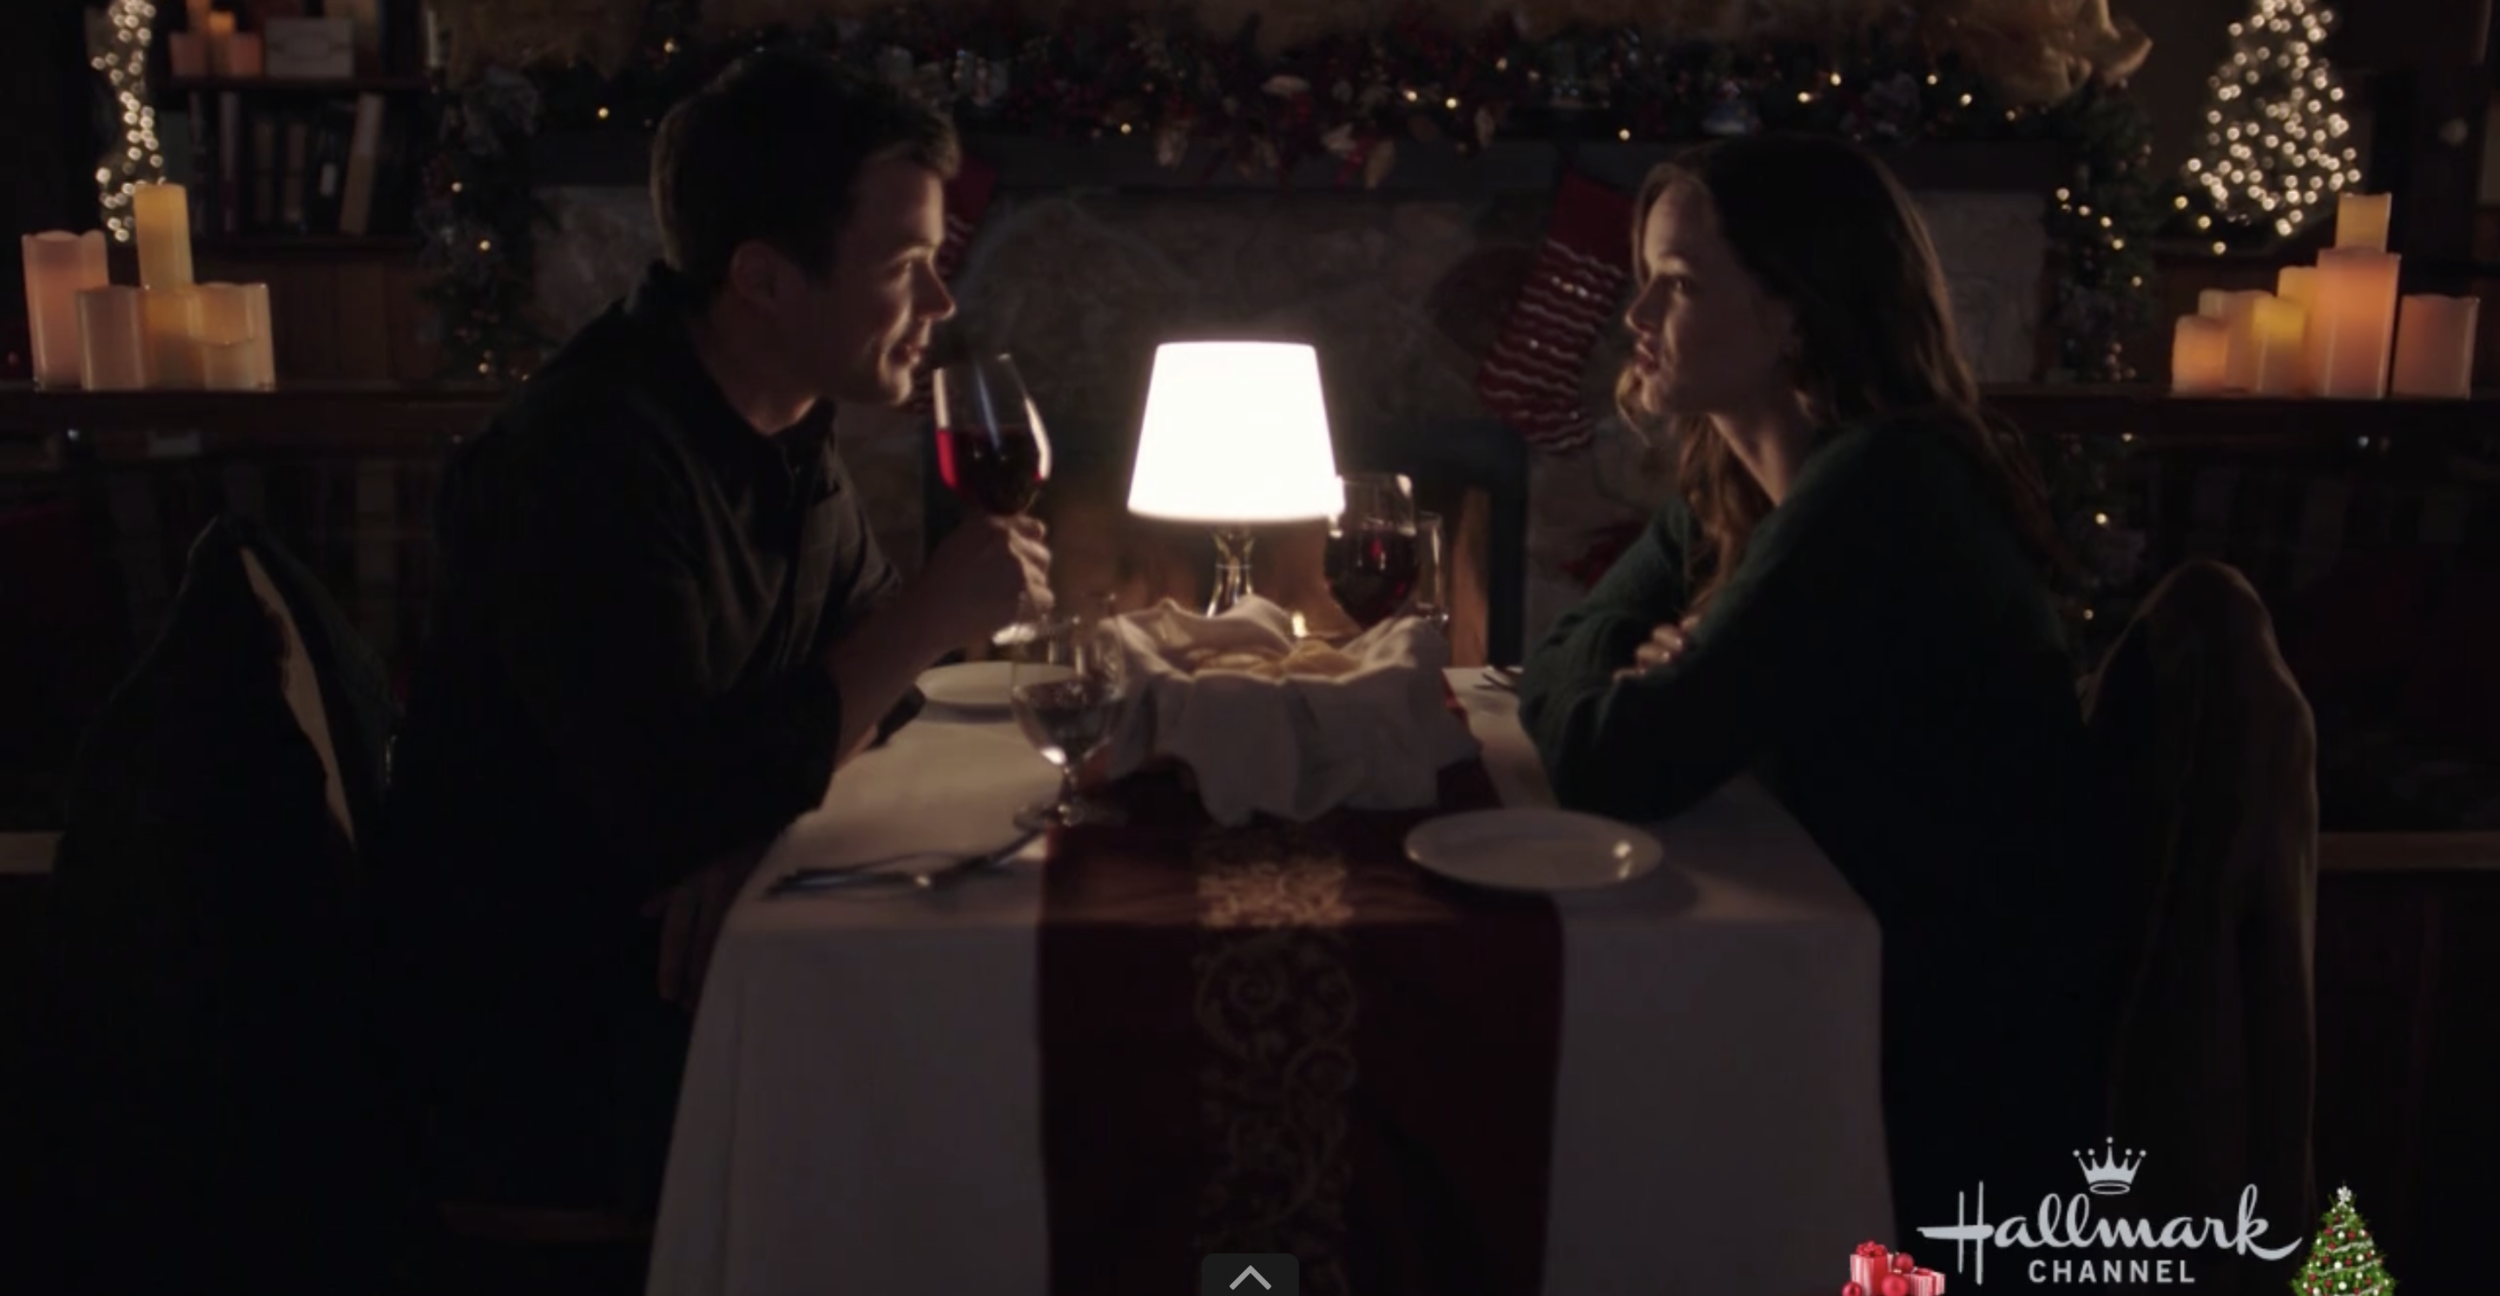 Don't mind the wine, the mood lighting, or the fire— this is totally not a date.